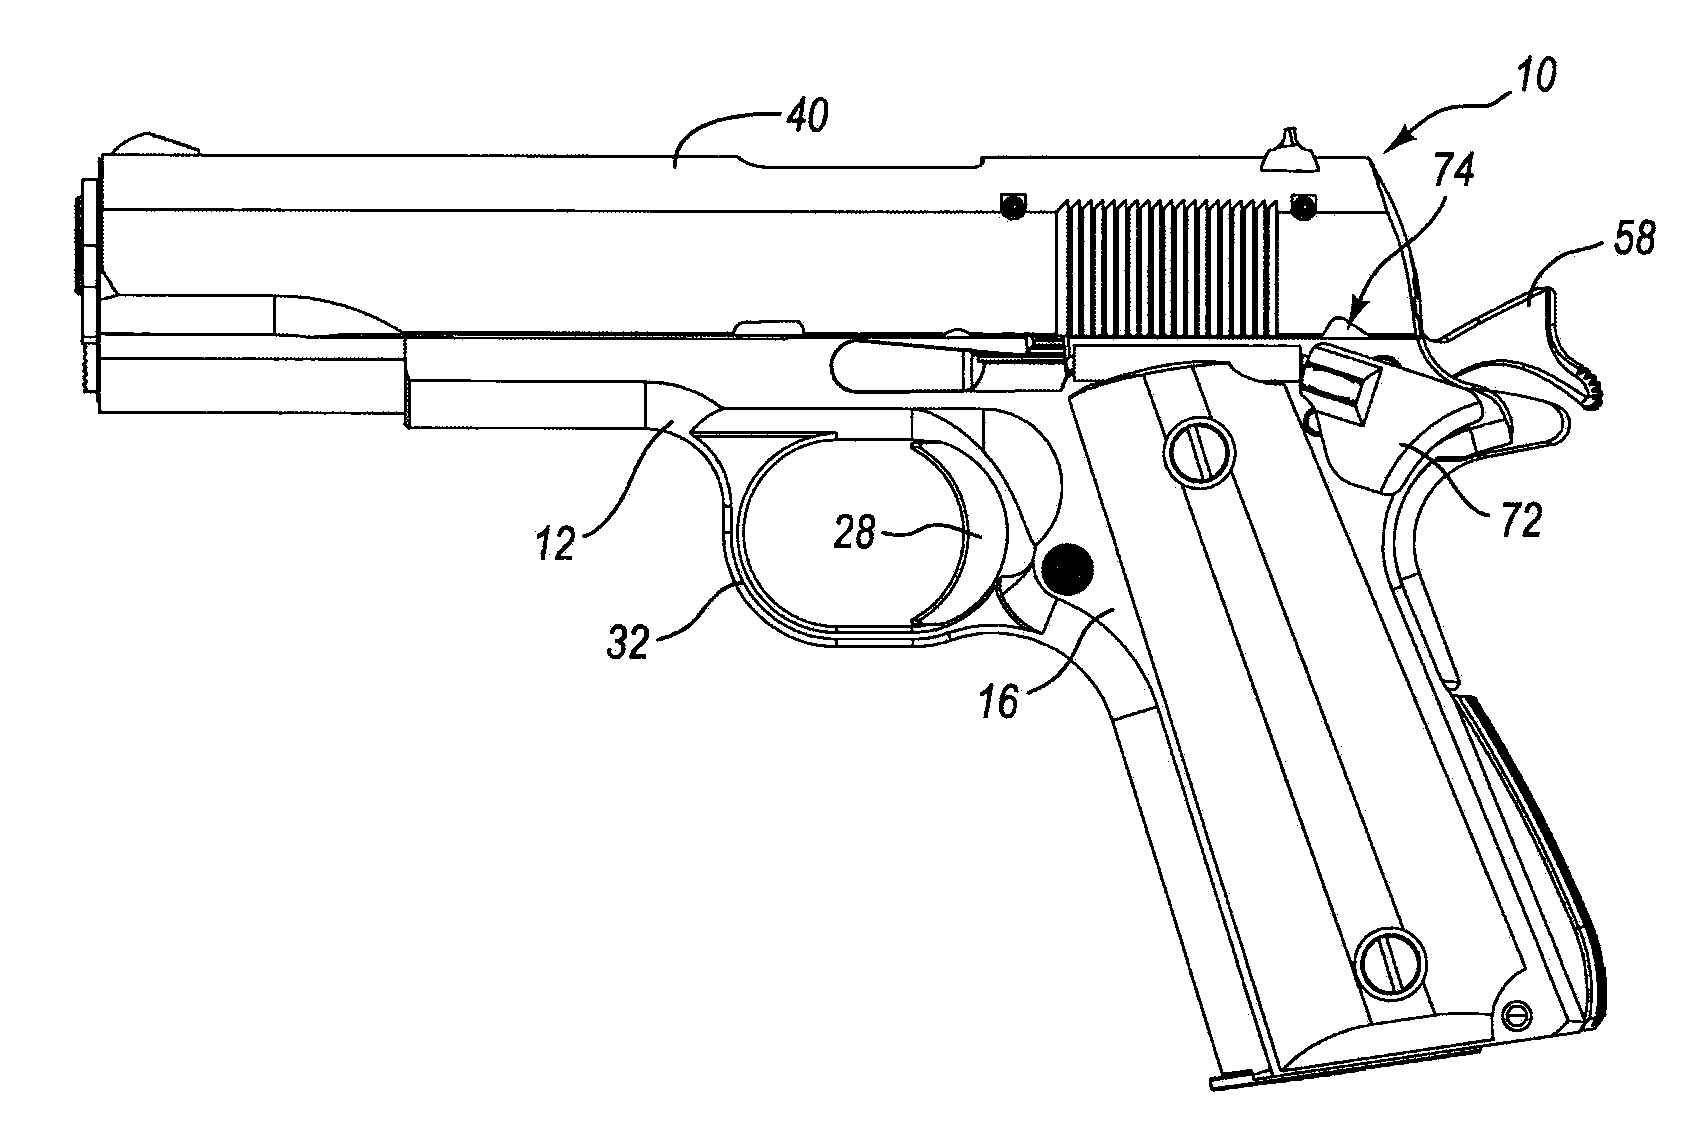 M1911 Drawing At Free For Personal Use 1911 Magazine Diagram Download Wiring Diagrams Pictures 1700x1124